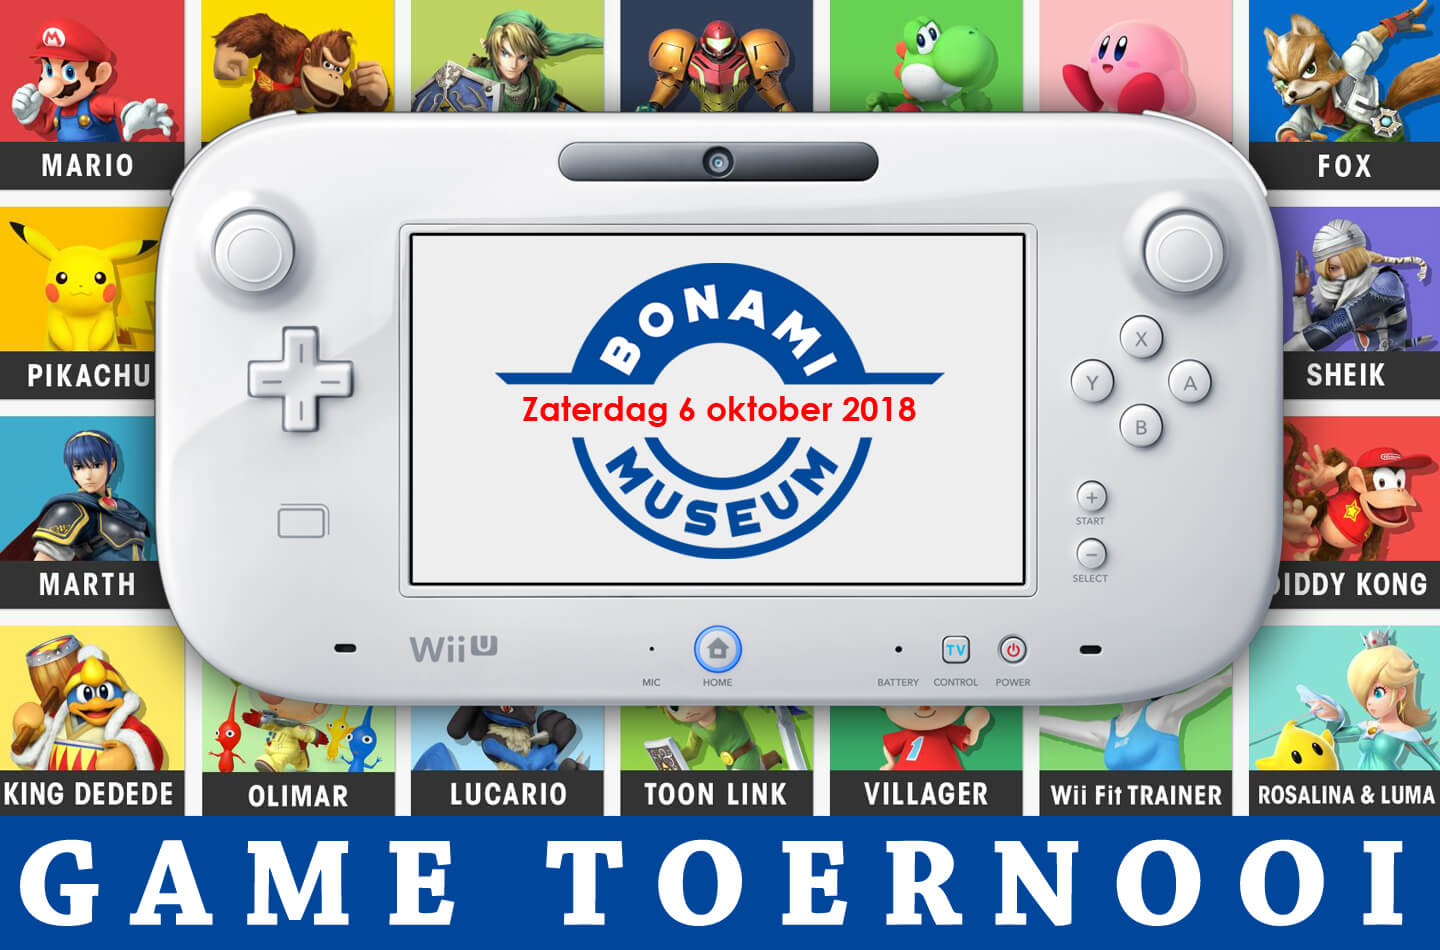 Game toernooien